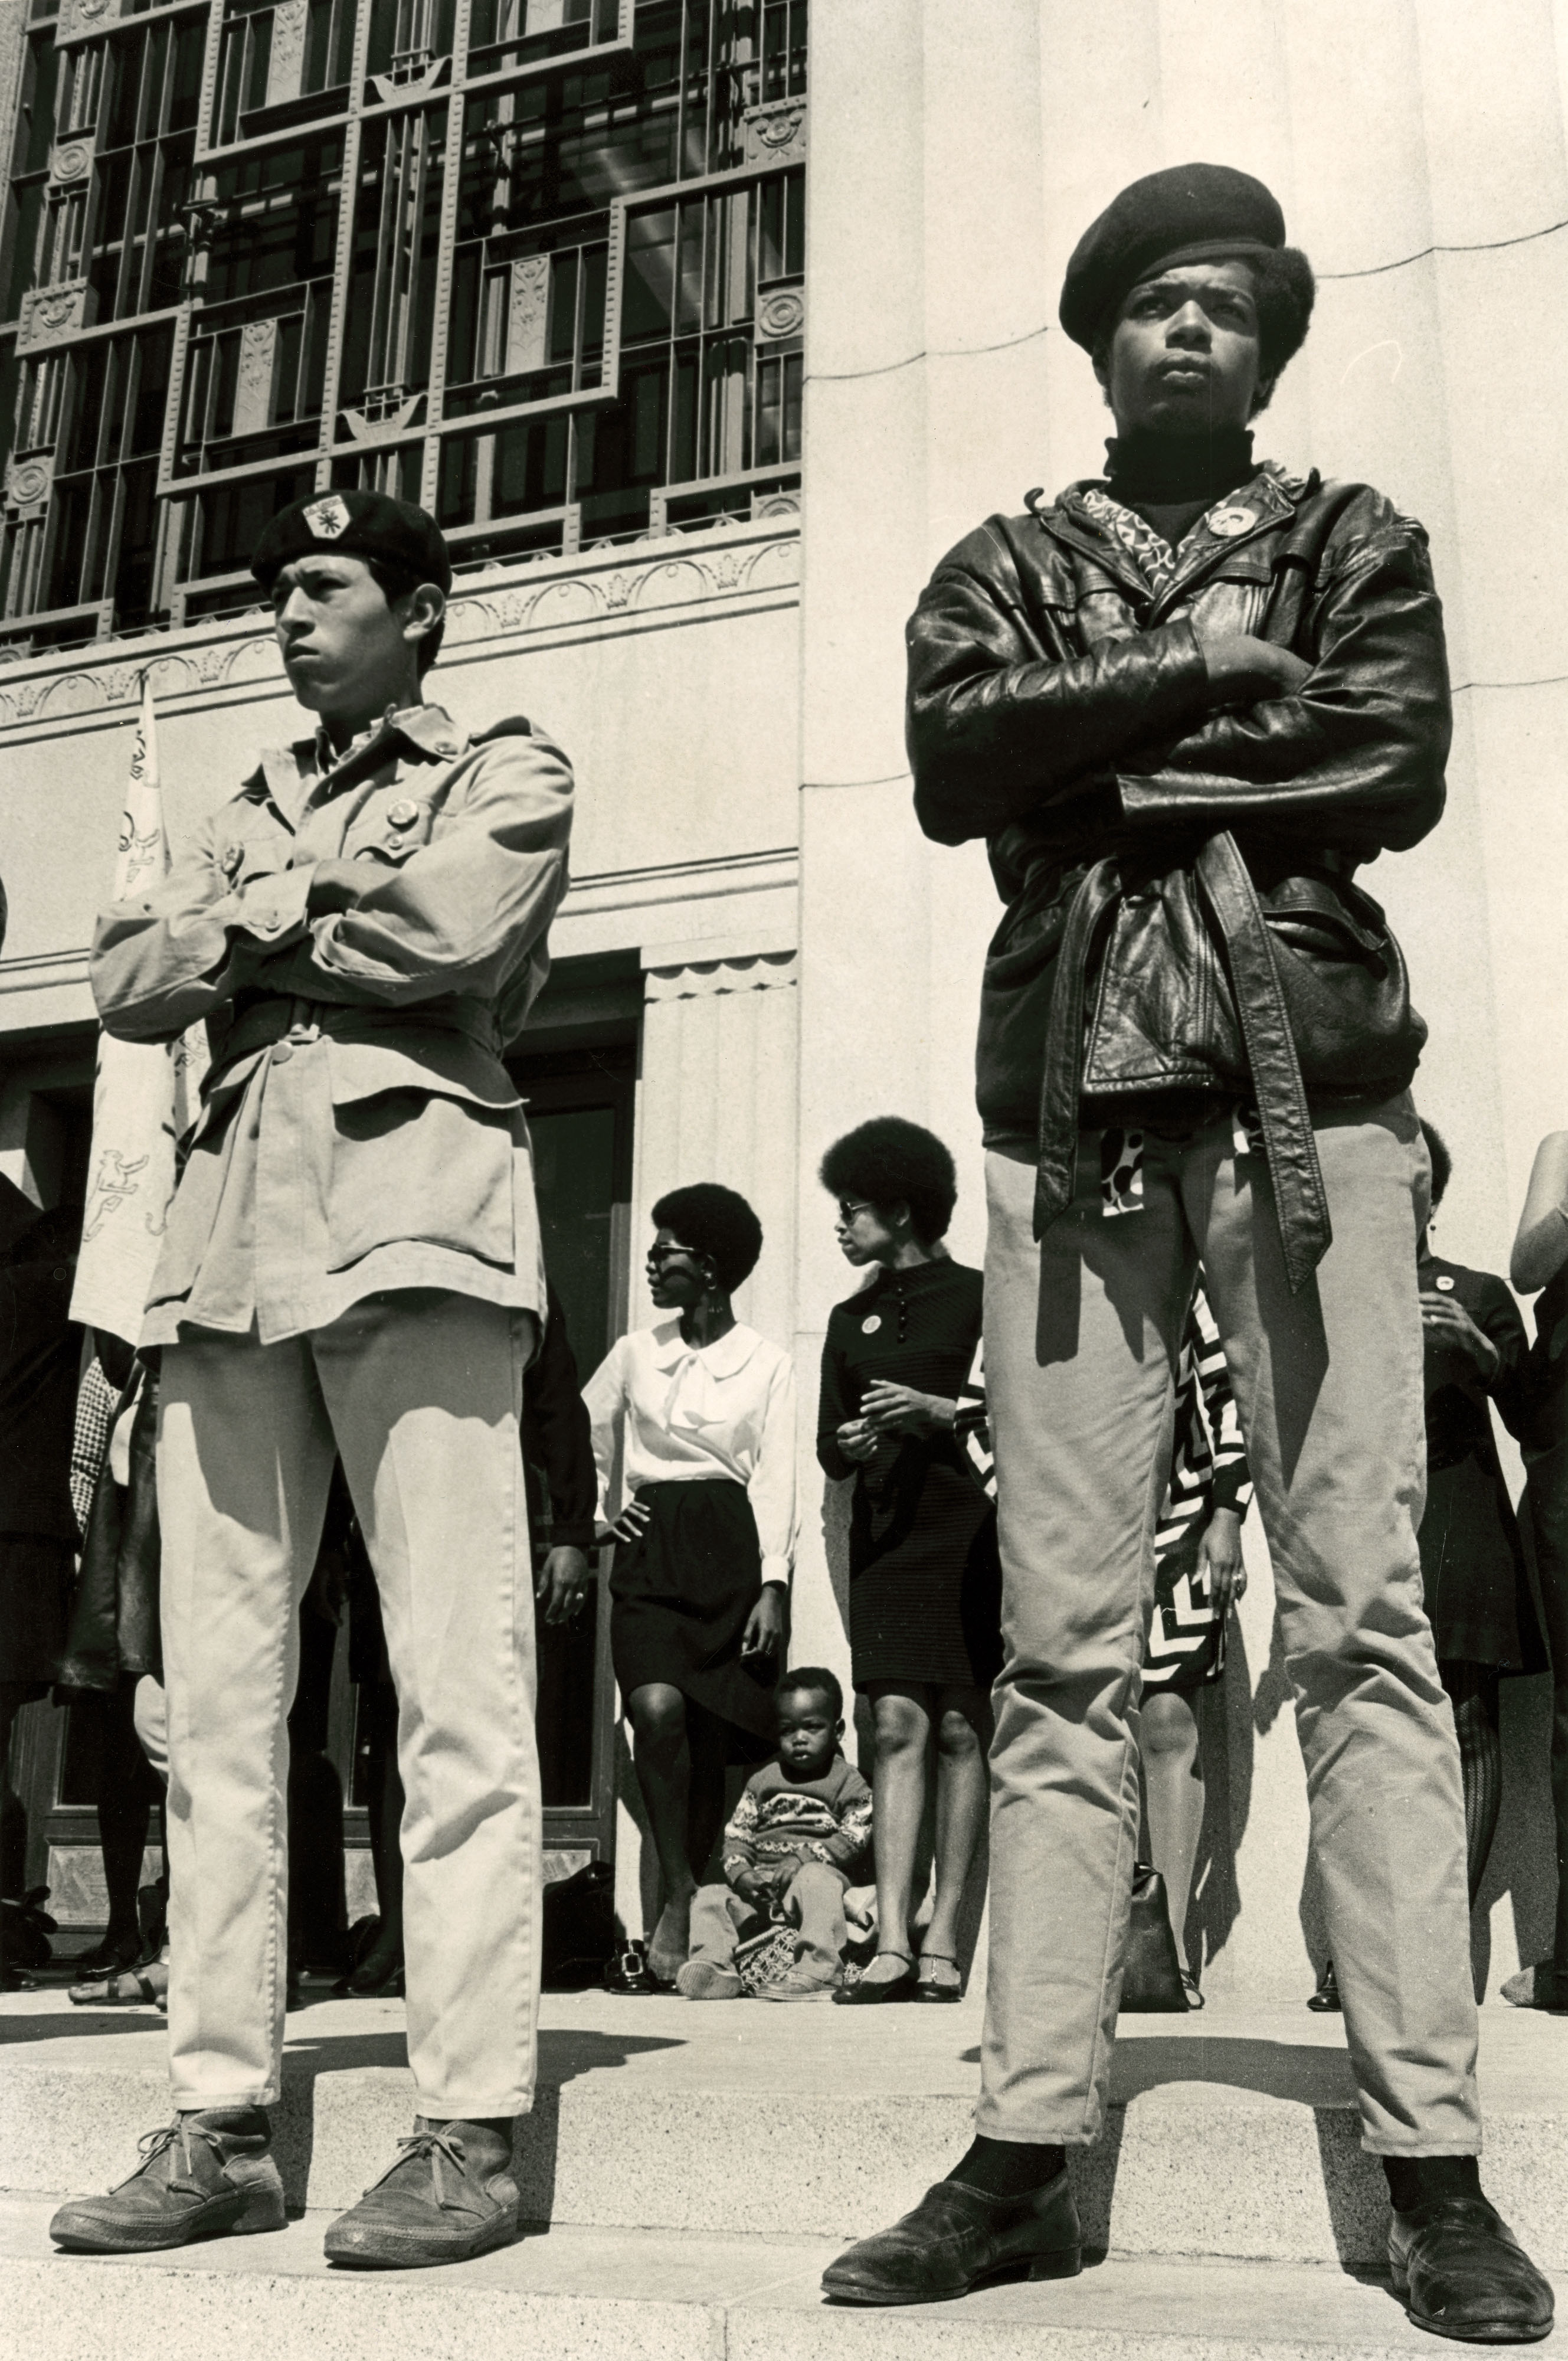 the role and influence of huey p newton in the black panther party movement in the 1960s and 1970s But principals of the original black panther party of the 1960s and 1970s— a the dr huey p newton of party, played a prominent role in.